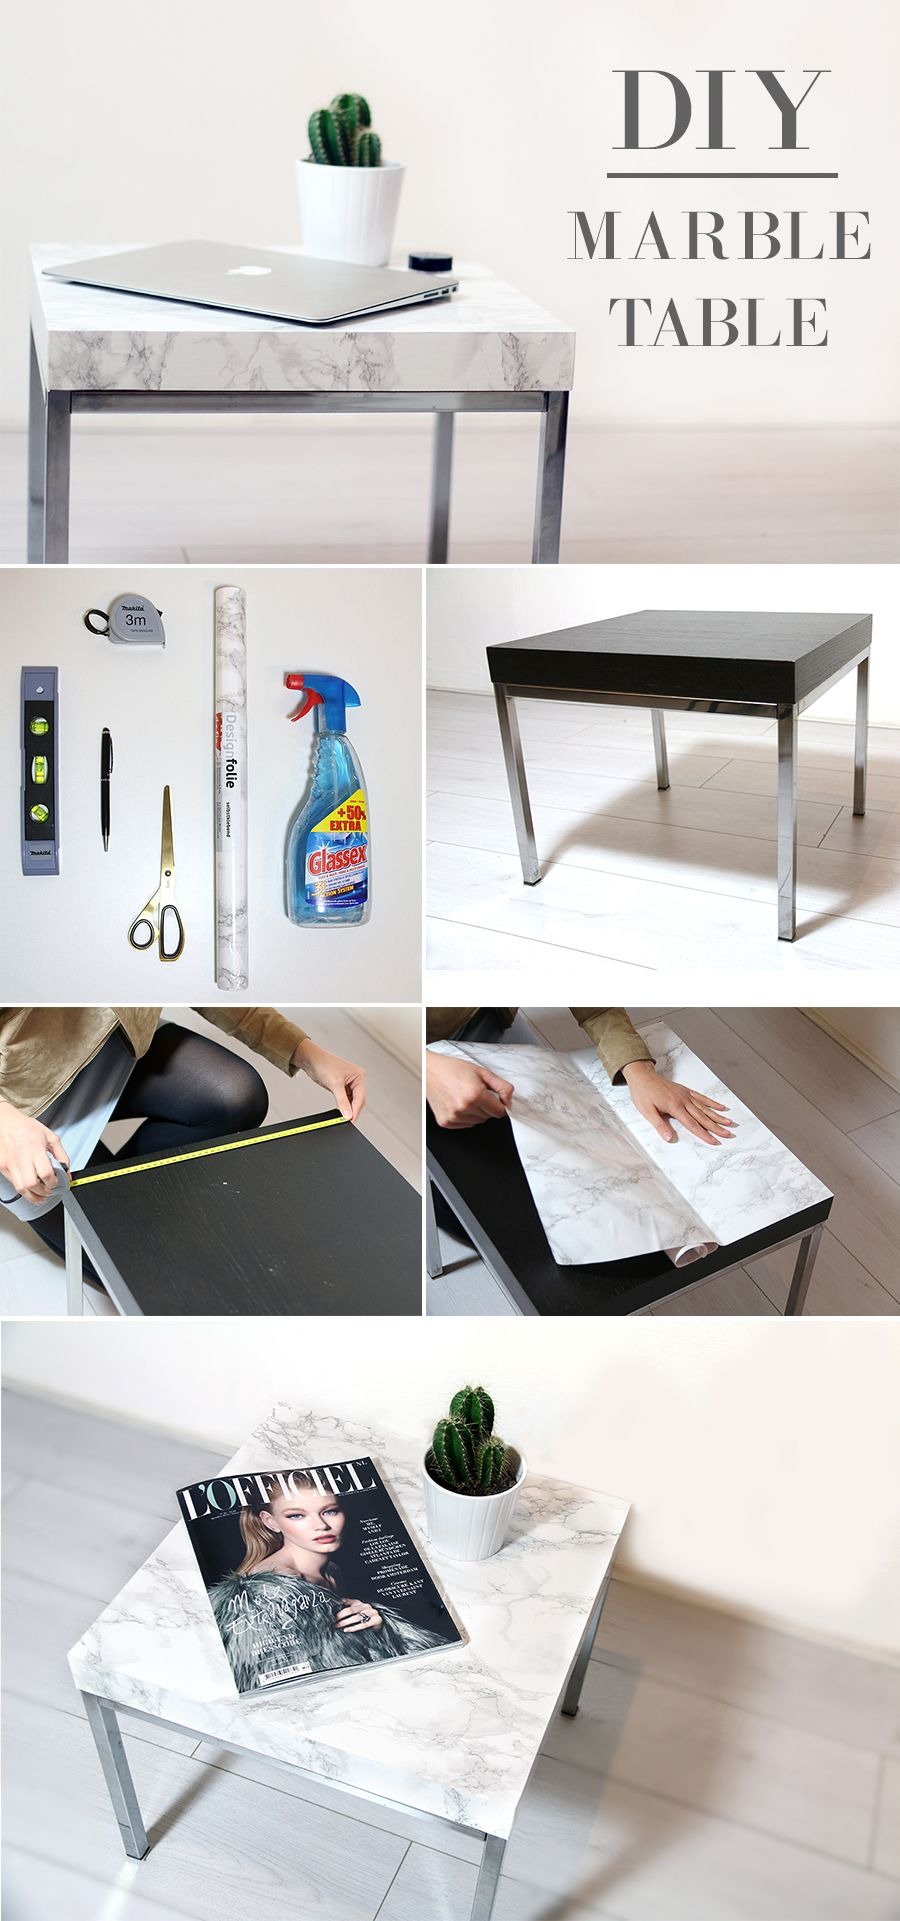 Diy Marble Table Diy Decoration Diy Room Decor Diy Furniture Decor